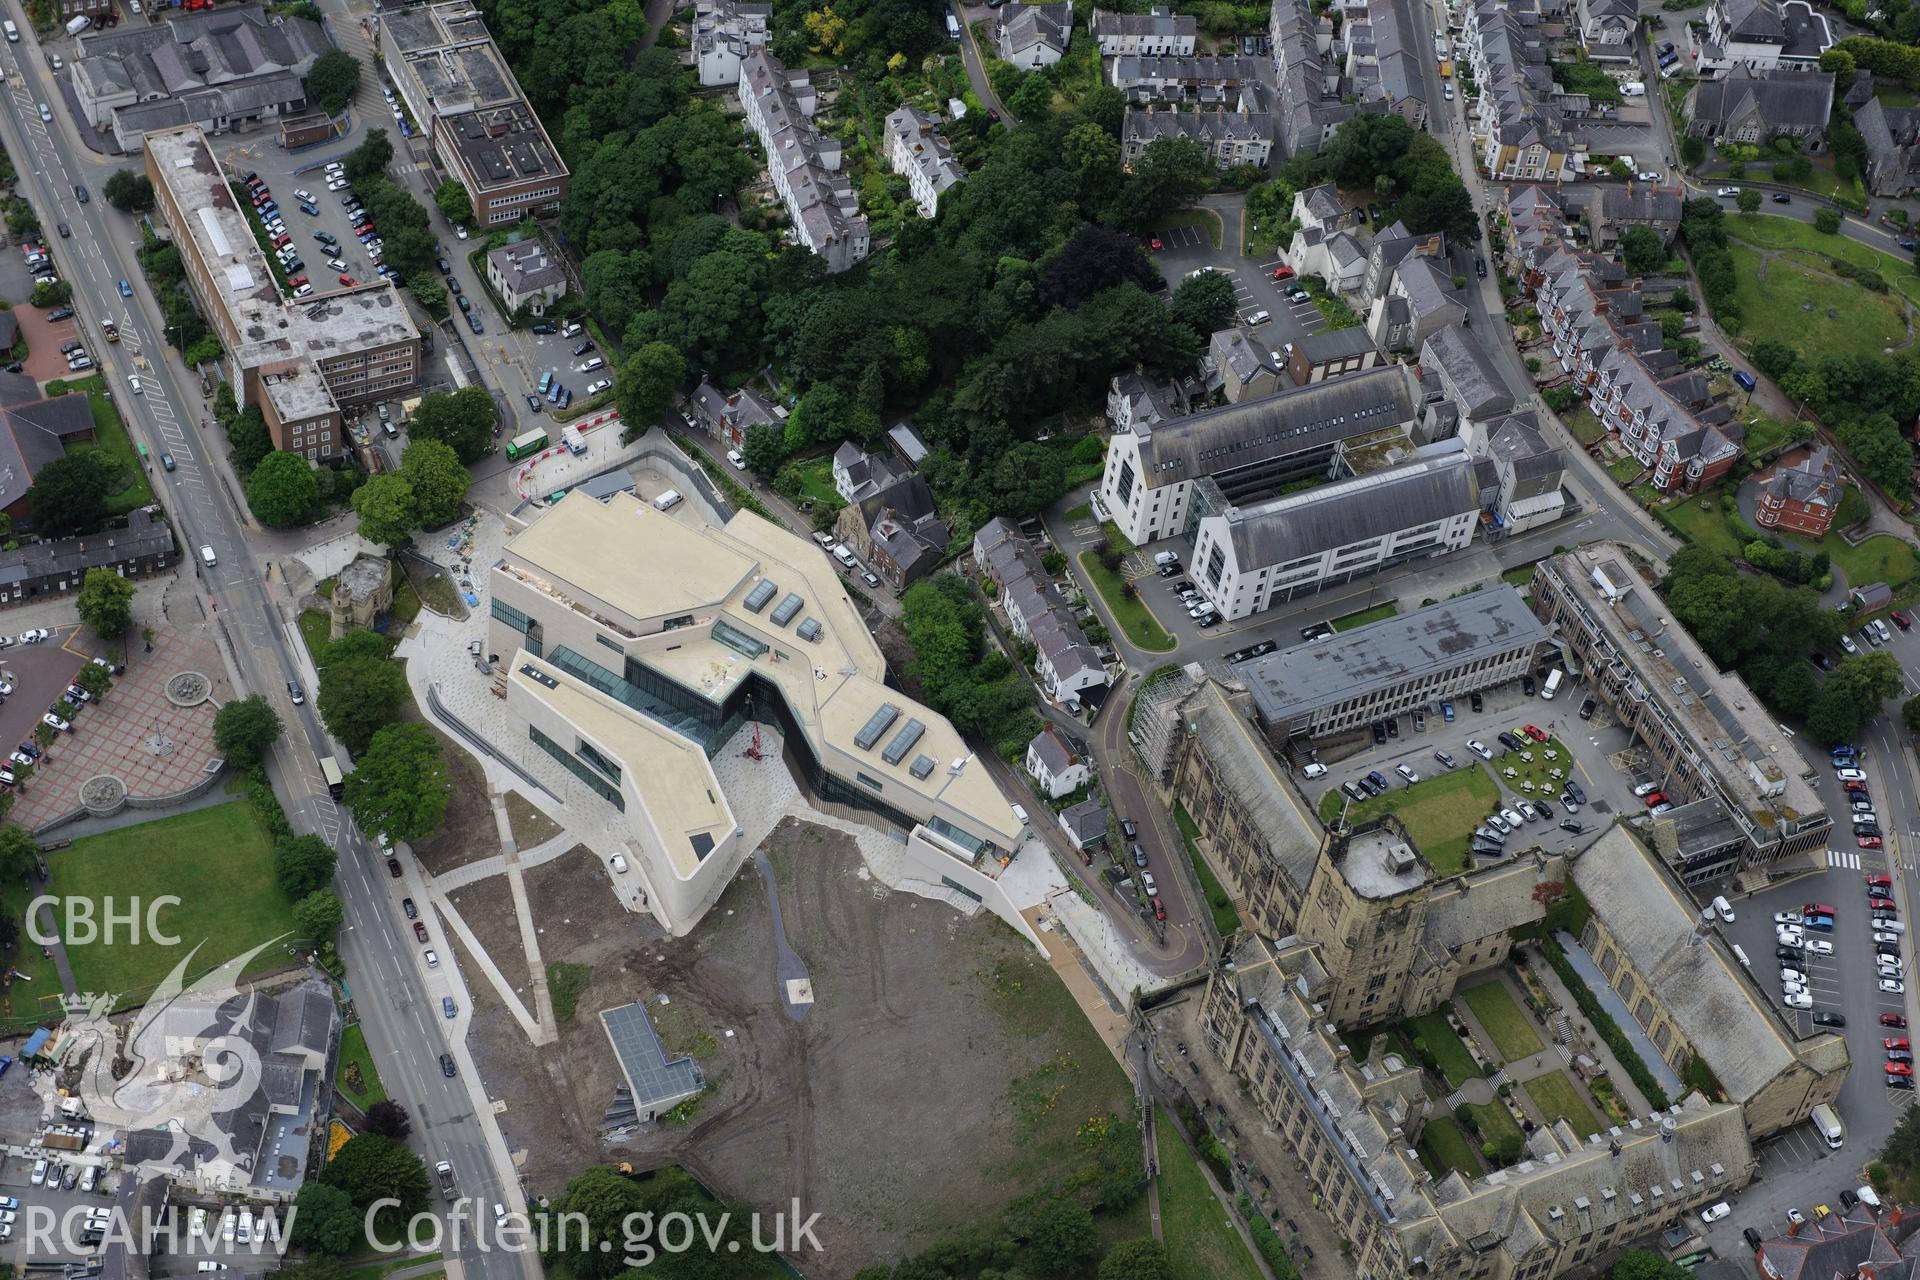 Bangor University, Theatr Gwynedd (demolished), Pontio, War Memorial, Baptist Church & Presbyterian Church. Oblique aerial photograph taken during the Royal Commission's programme of archaeological aerial reconnaissance by Toby Driver on 30th July 2015.